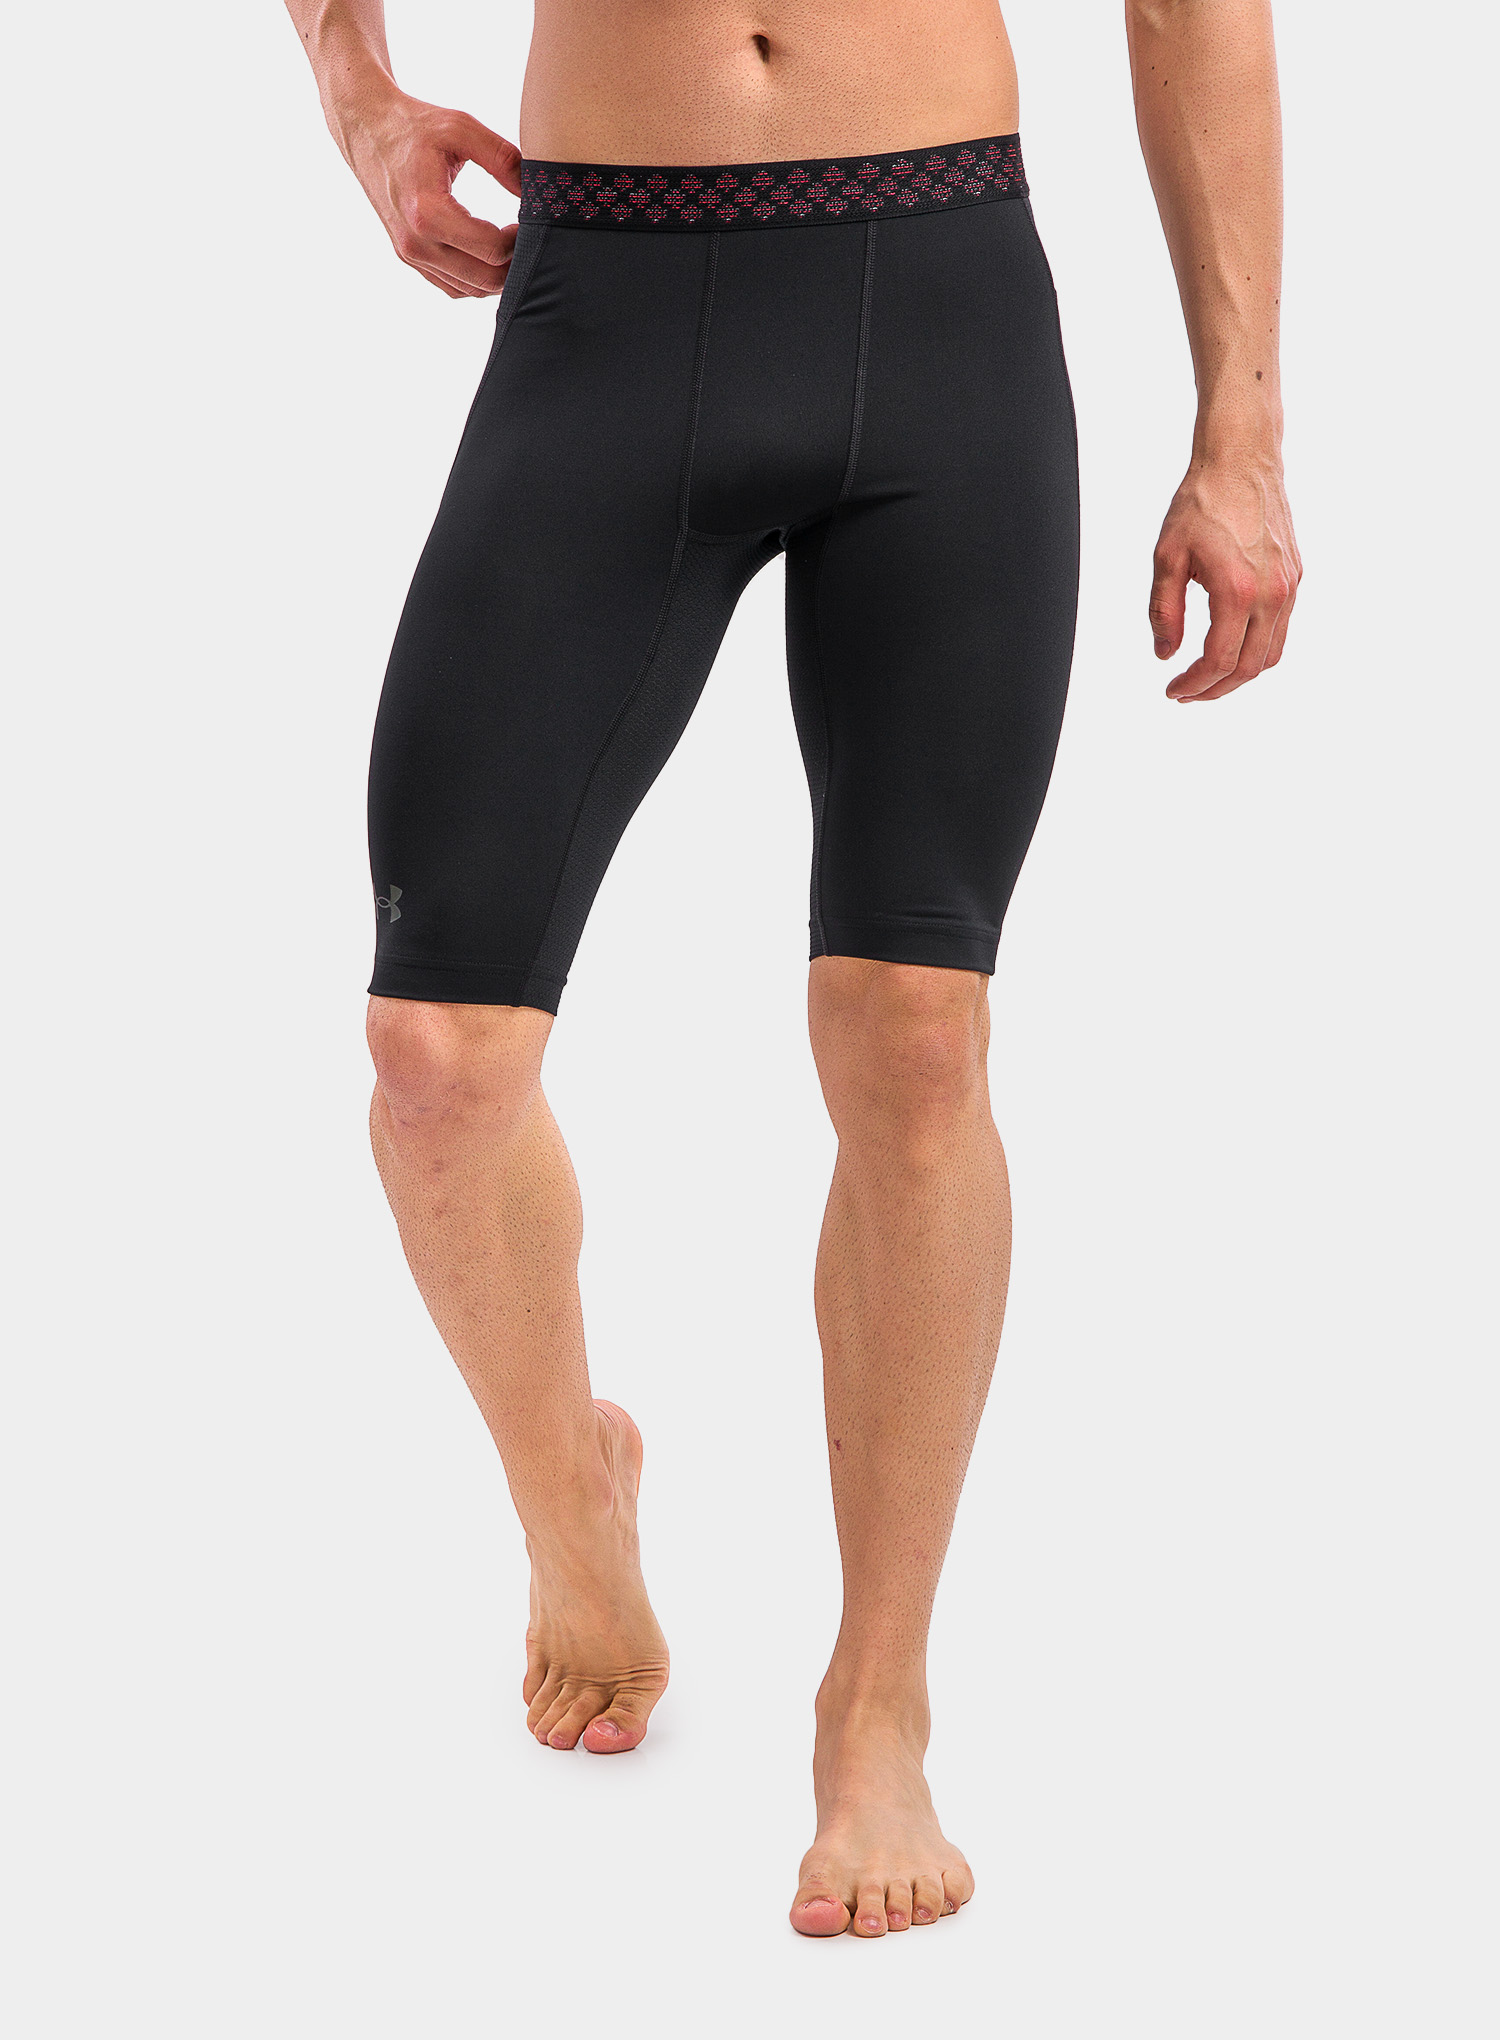 Spodenki Under Armour HG Rush 2.0 Long Shorts - black/black - zdjęcie nr. 10